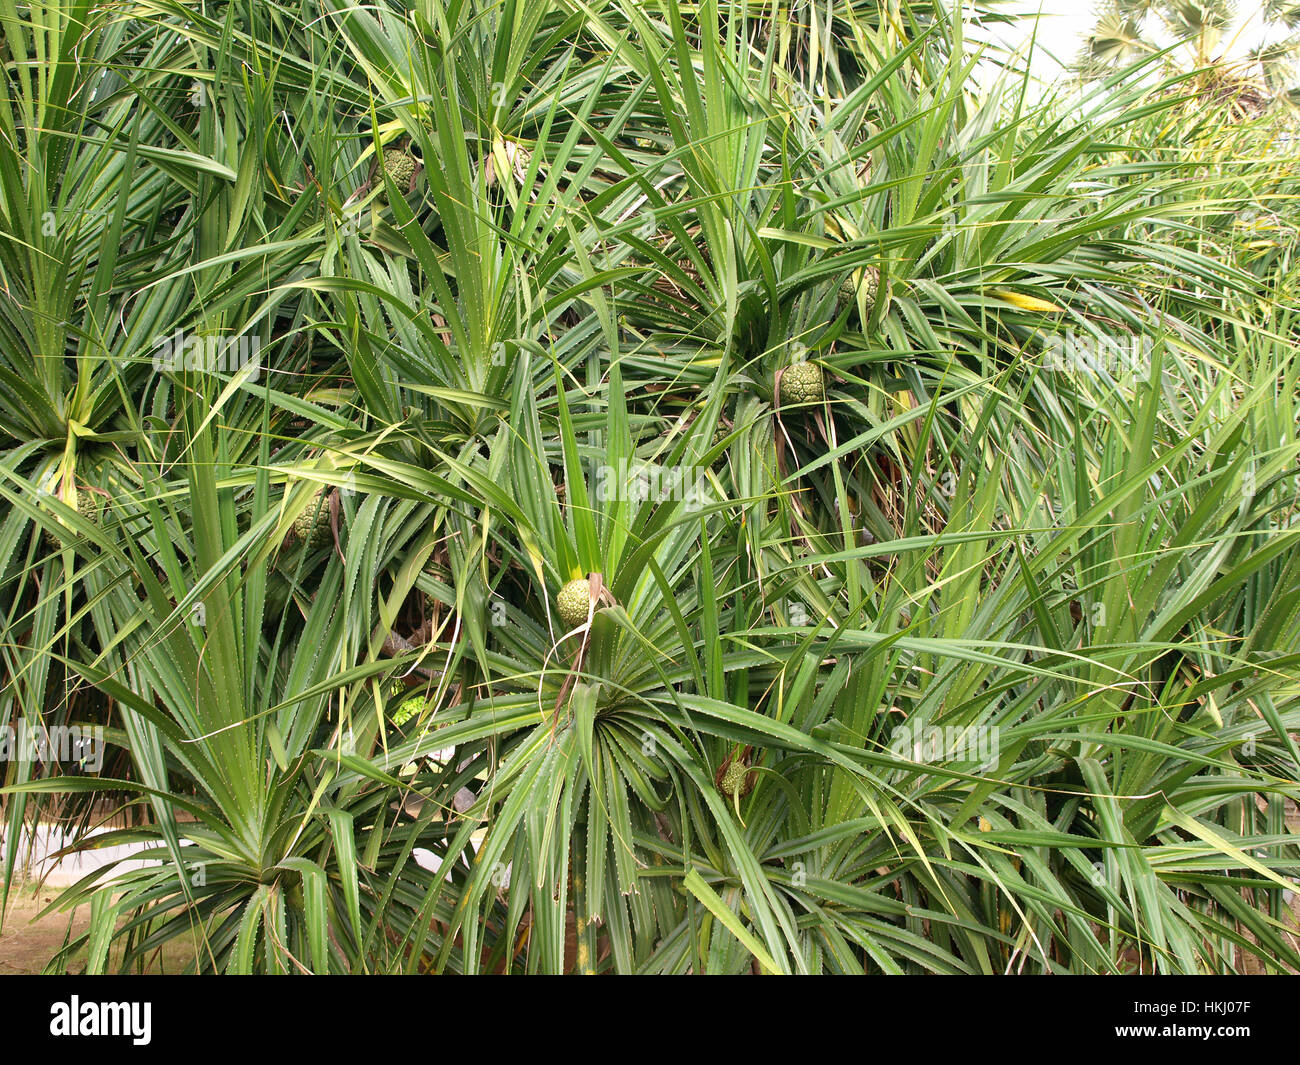 Pandanus trees are also known as Screw Pine grow in mangrove ...